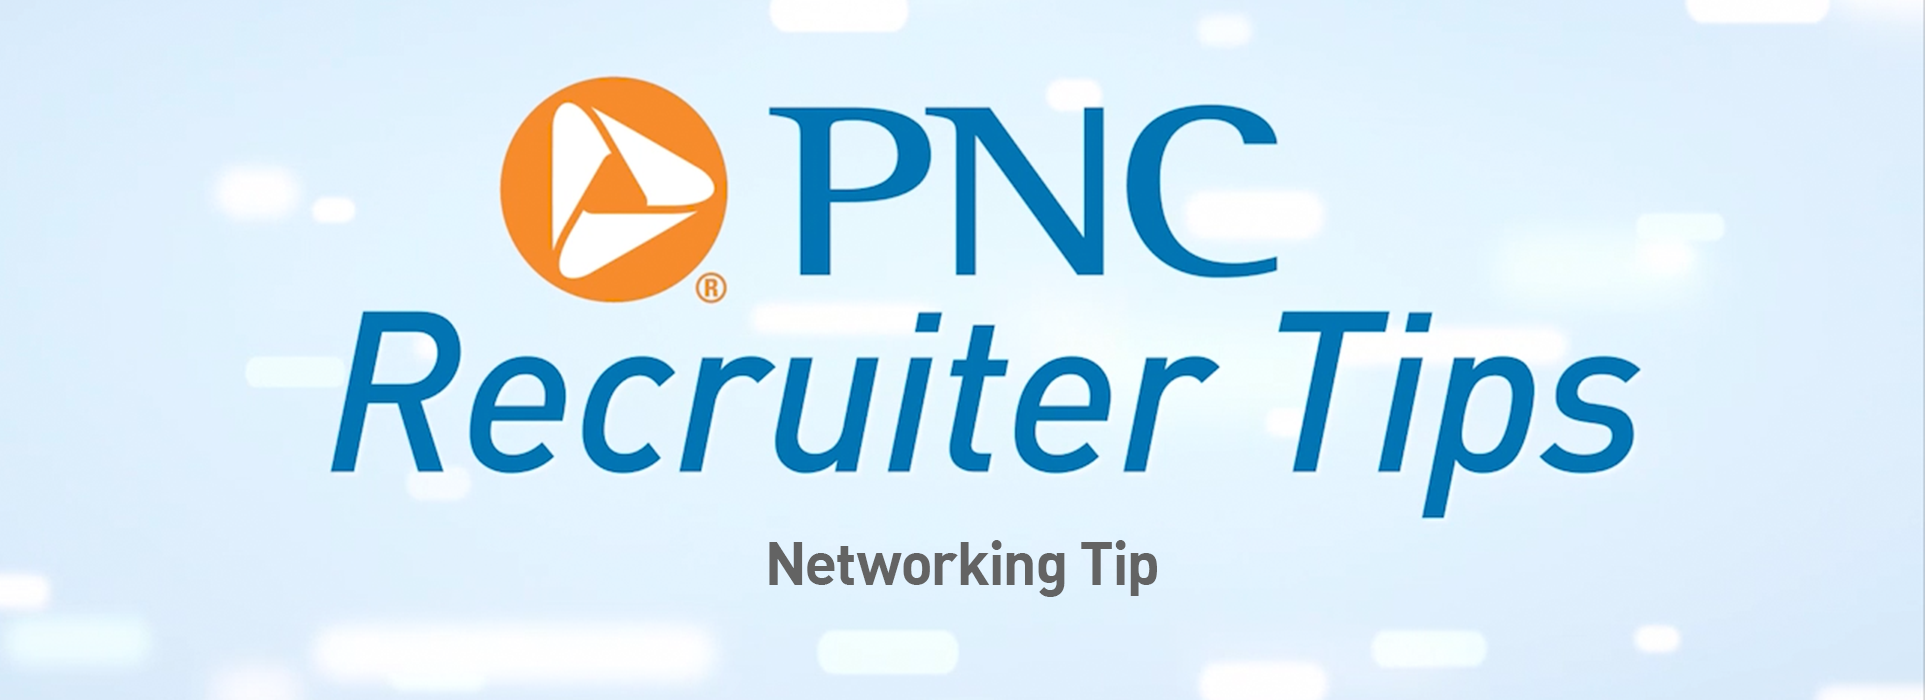 PNC Recruiter Tips: Networking Tip